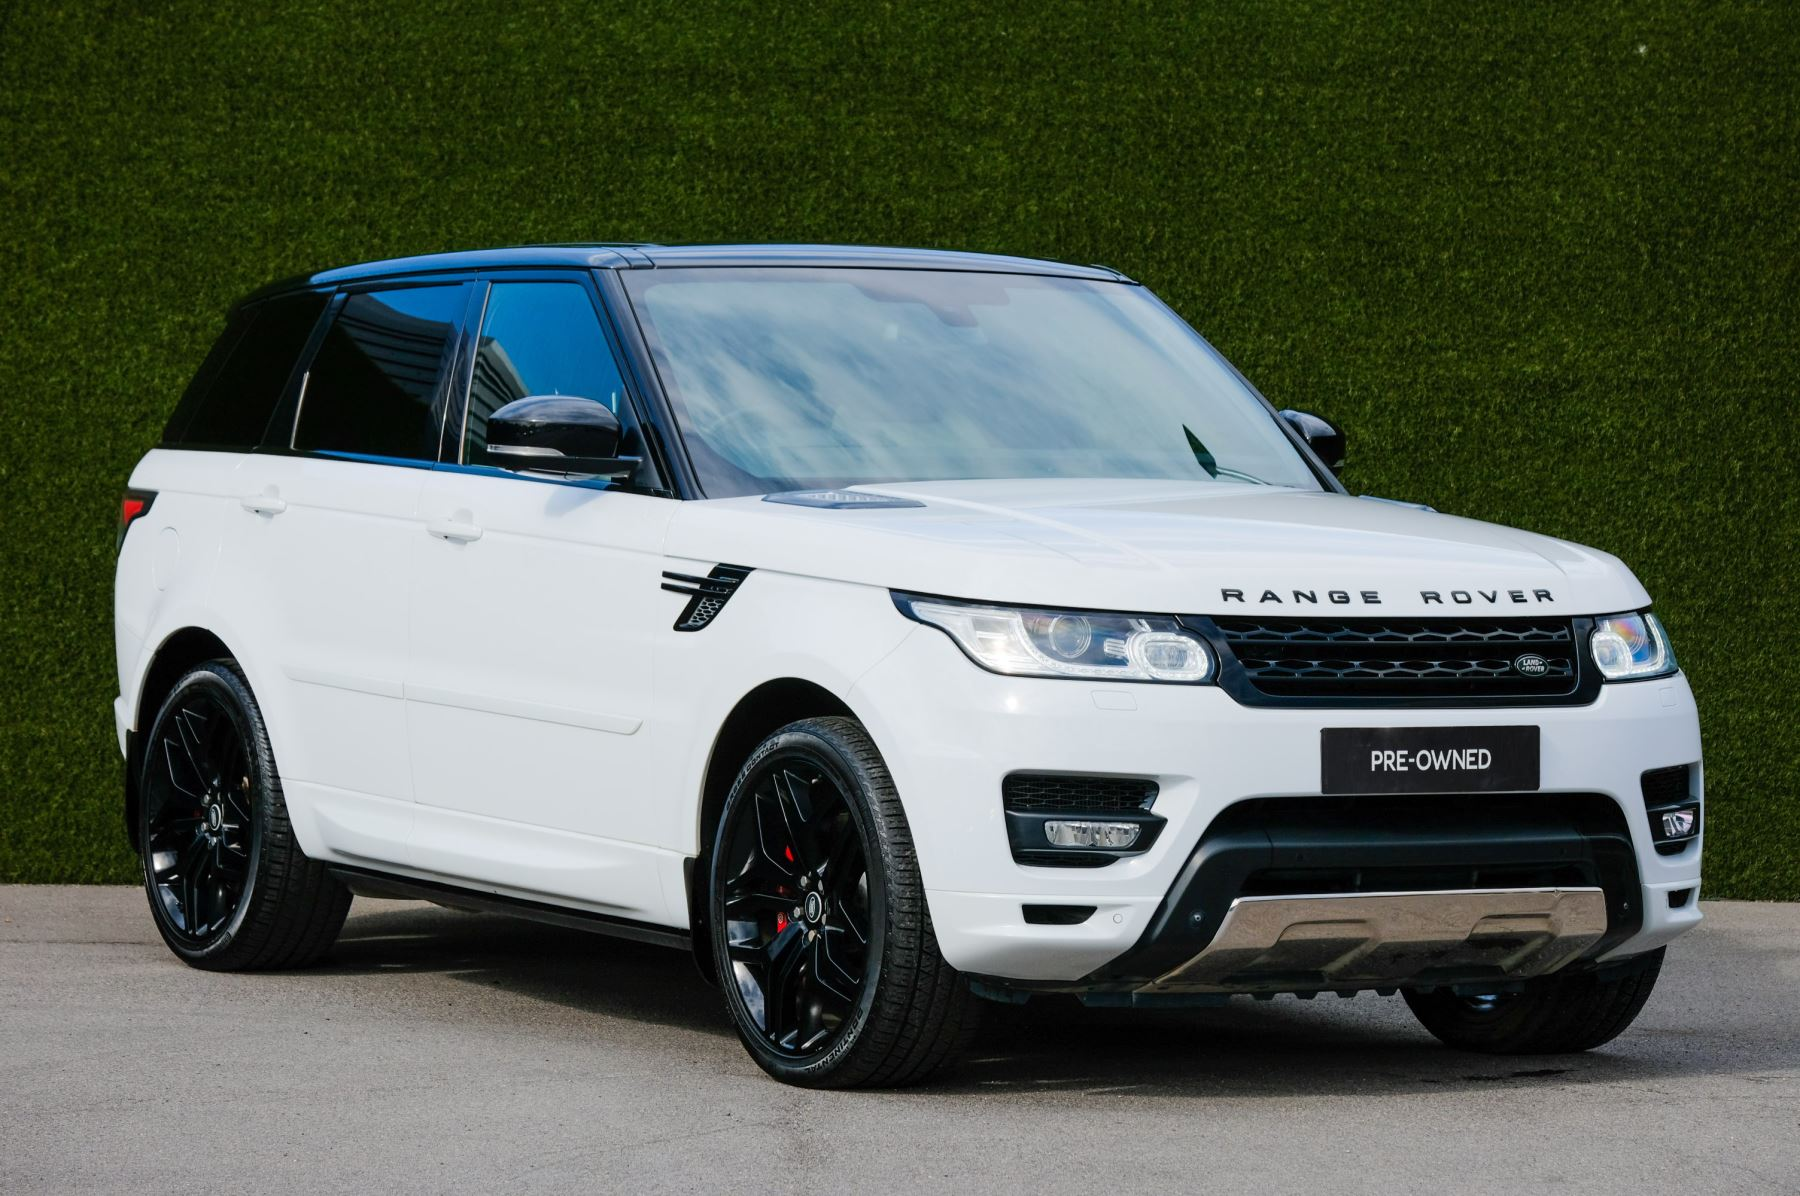 Land Rover Range Rover Sport 5.0 V8 S/C Autobiography Dynamic - 22 Inch Alloy Wheels - LED Signature Lights - 360 Camera image 1